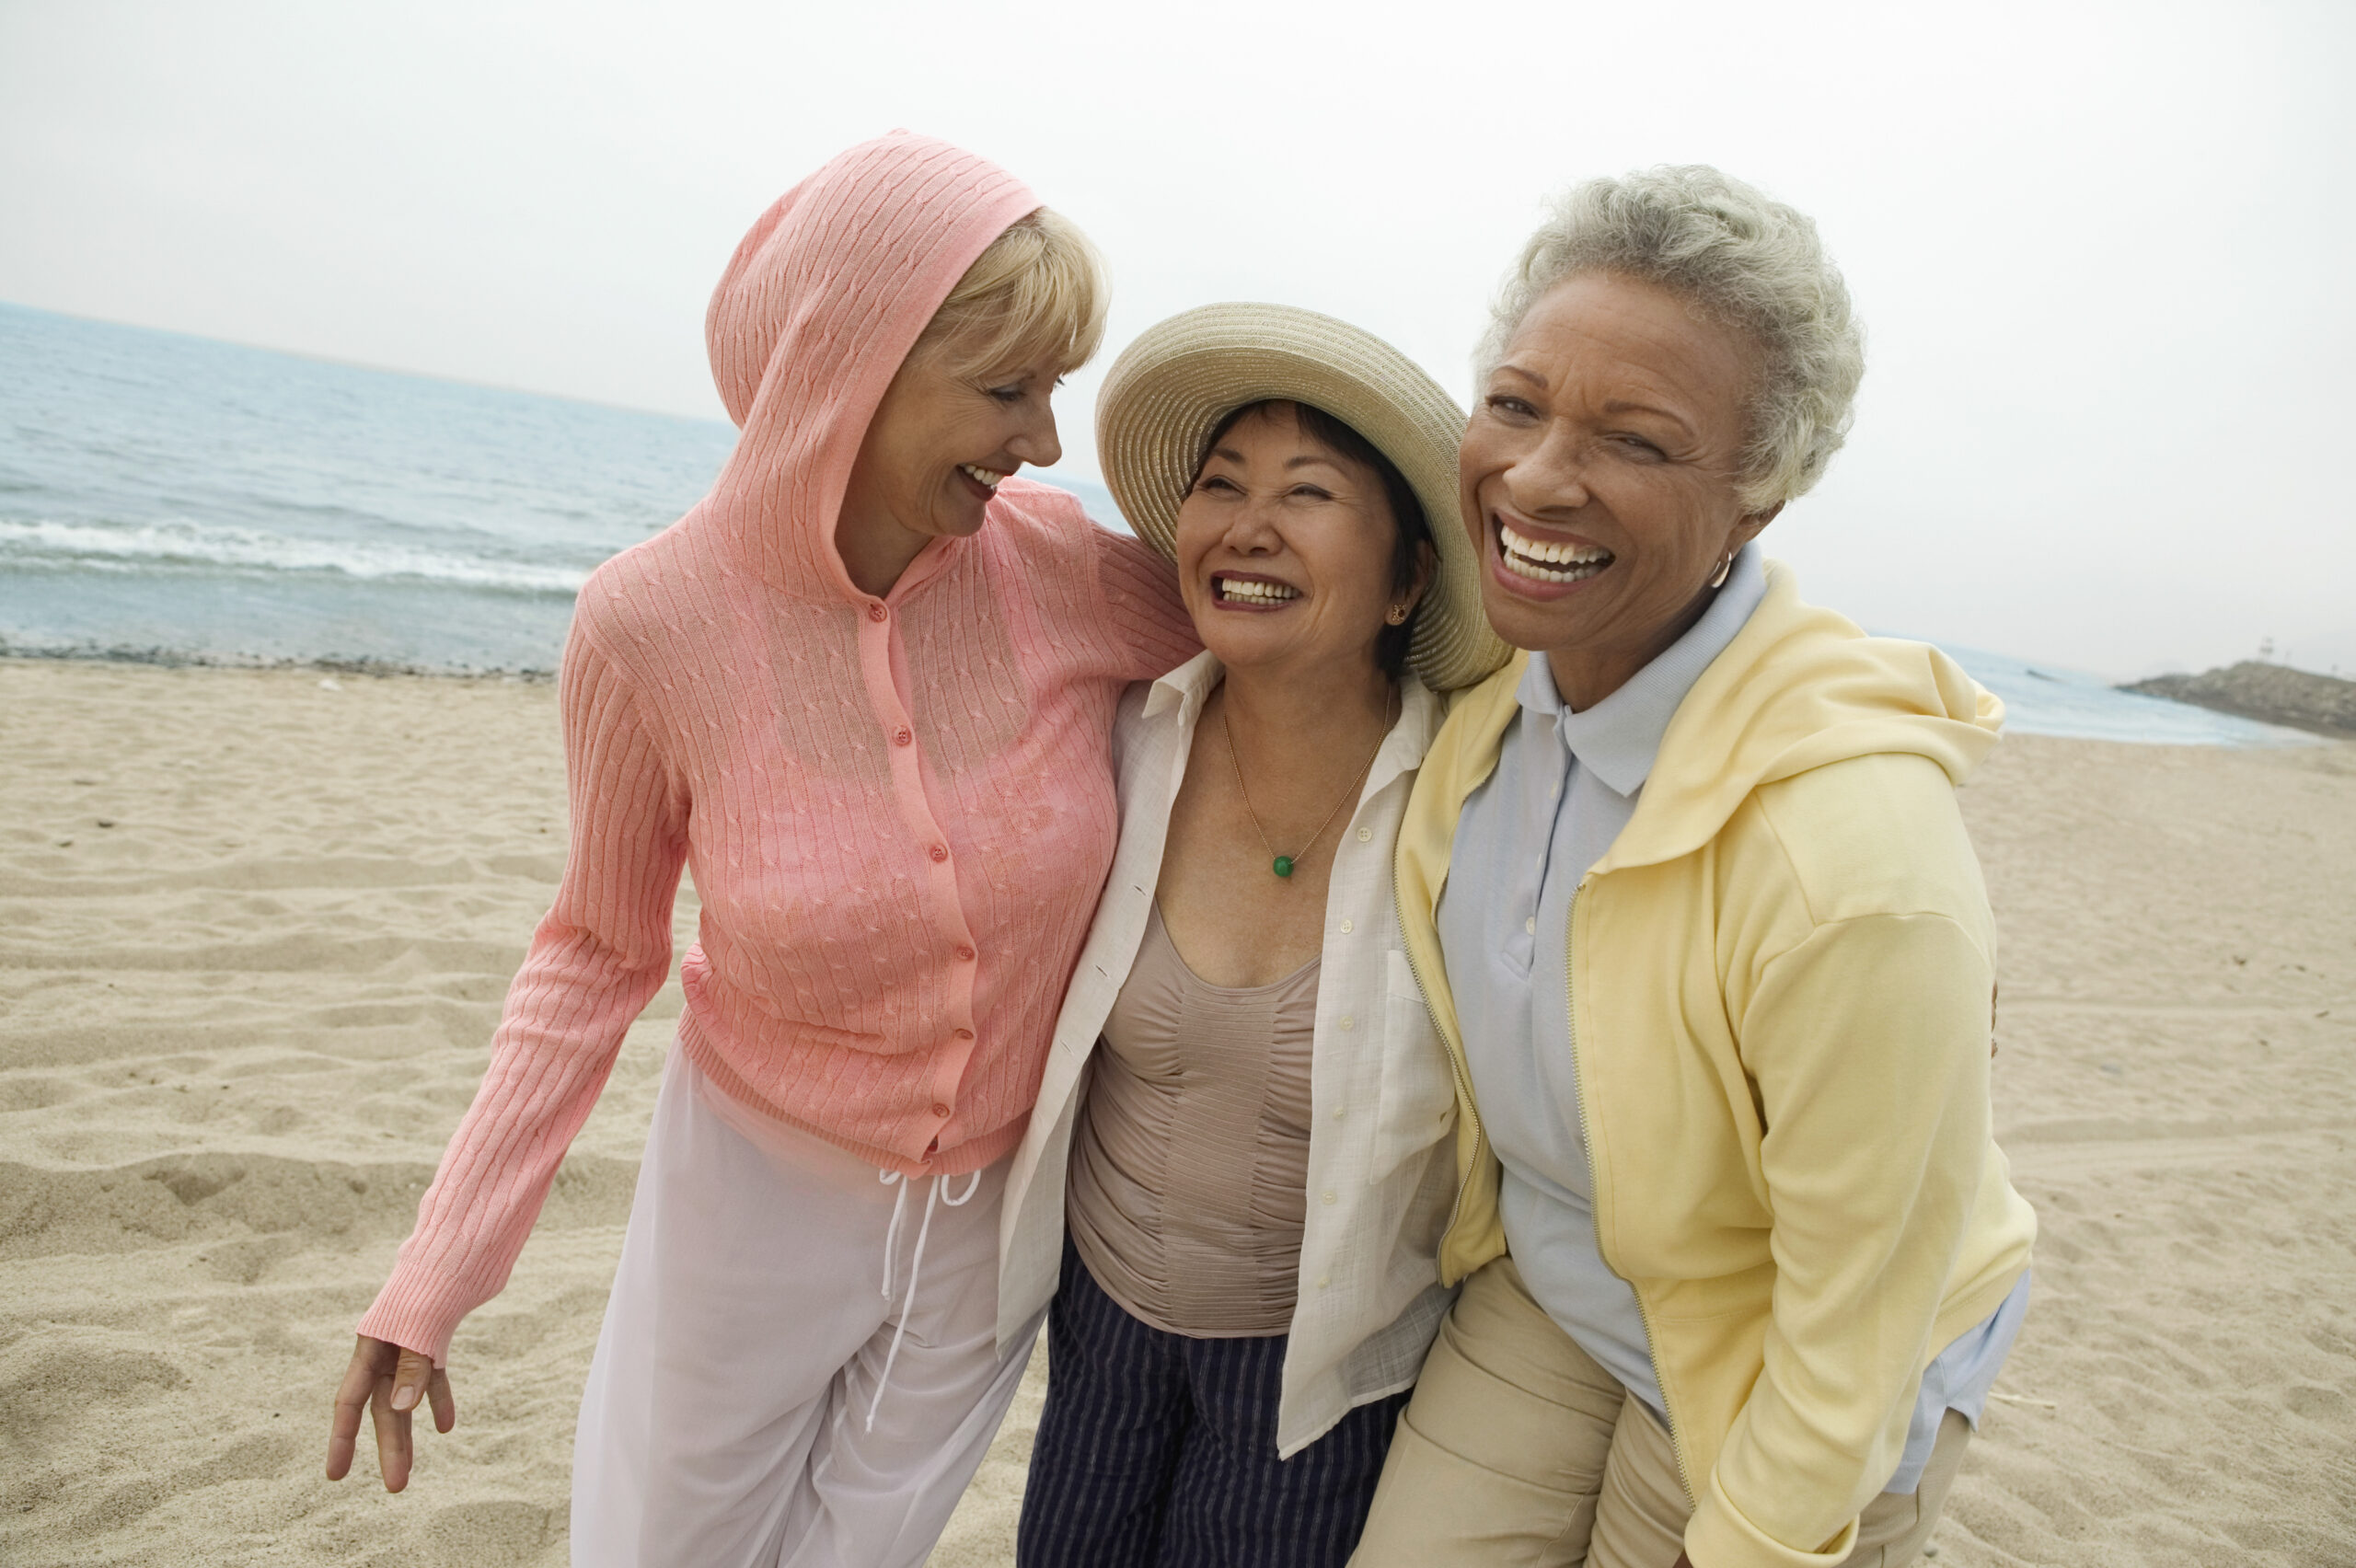 happy middle aged female friends enjoying vacation at beach, They are all laughing and smiling